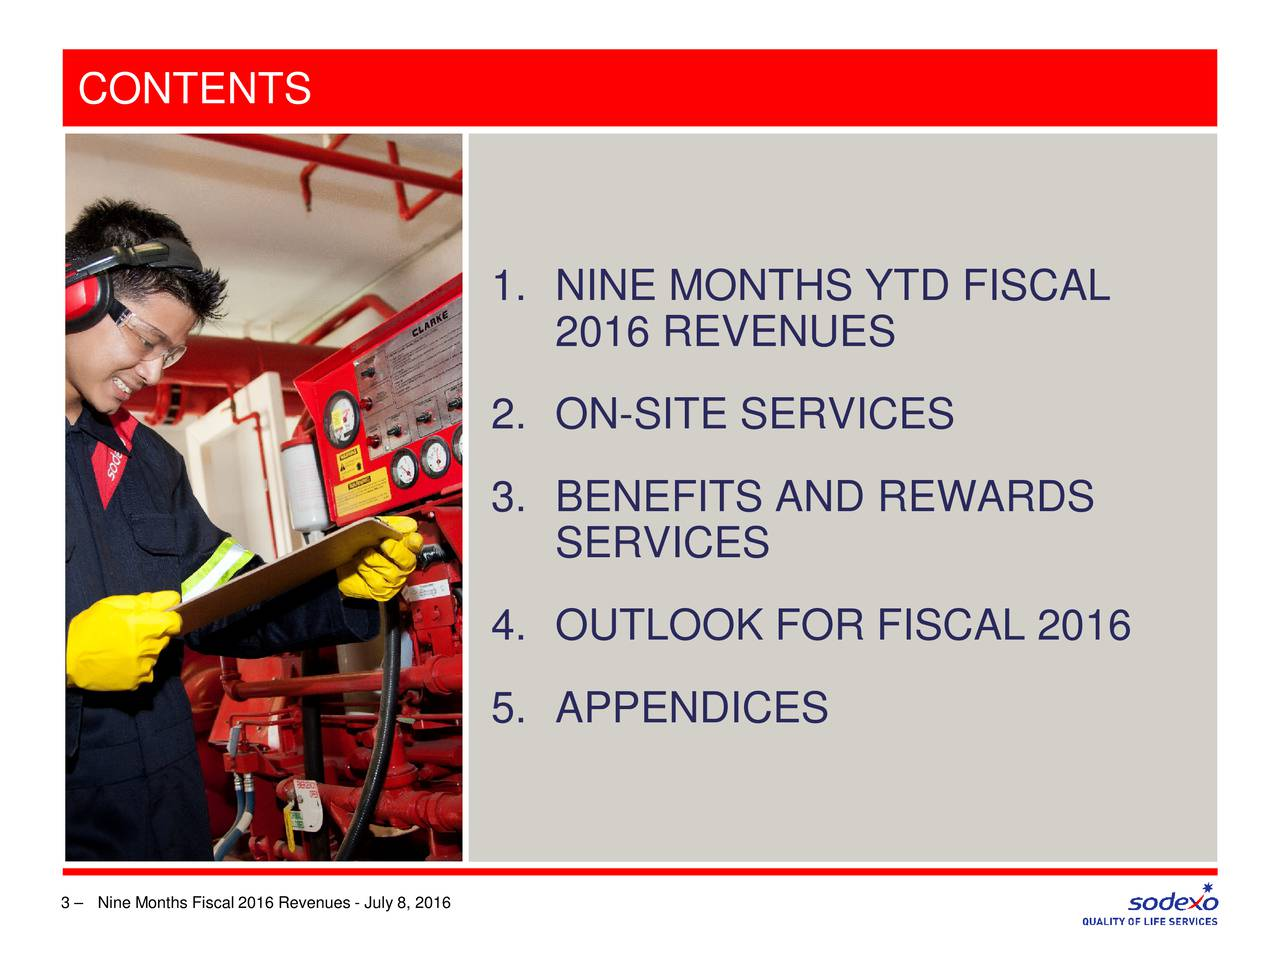 1. NINE MONTHS YTD FISCAL 2016 REVENUES 2. ON-SITE SERVICES 3. BENEFITS AND REWARDS SERVICES 4. OUTLOOK FOR FISCAL 2016 5. APPENDICES 3  Nine Months Fiscal 2016 Revenues - July 8, 2016